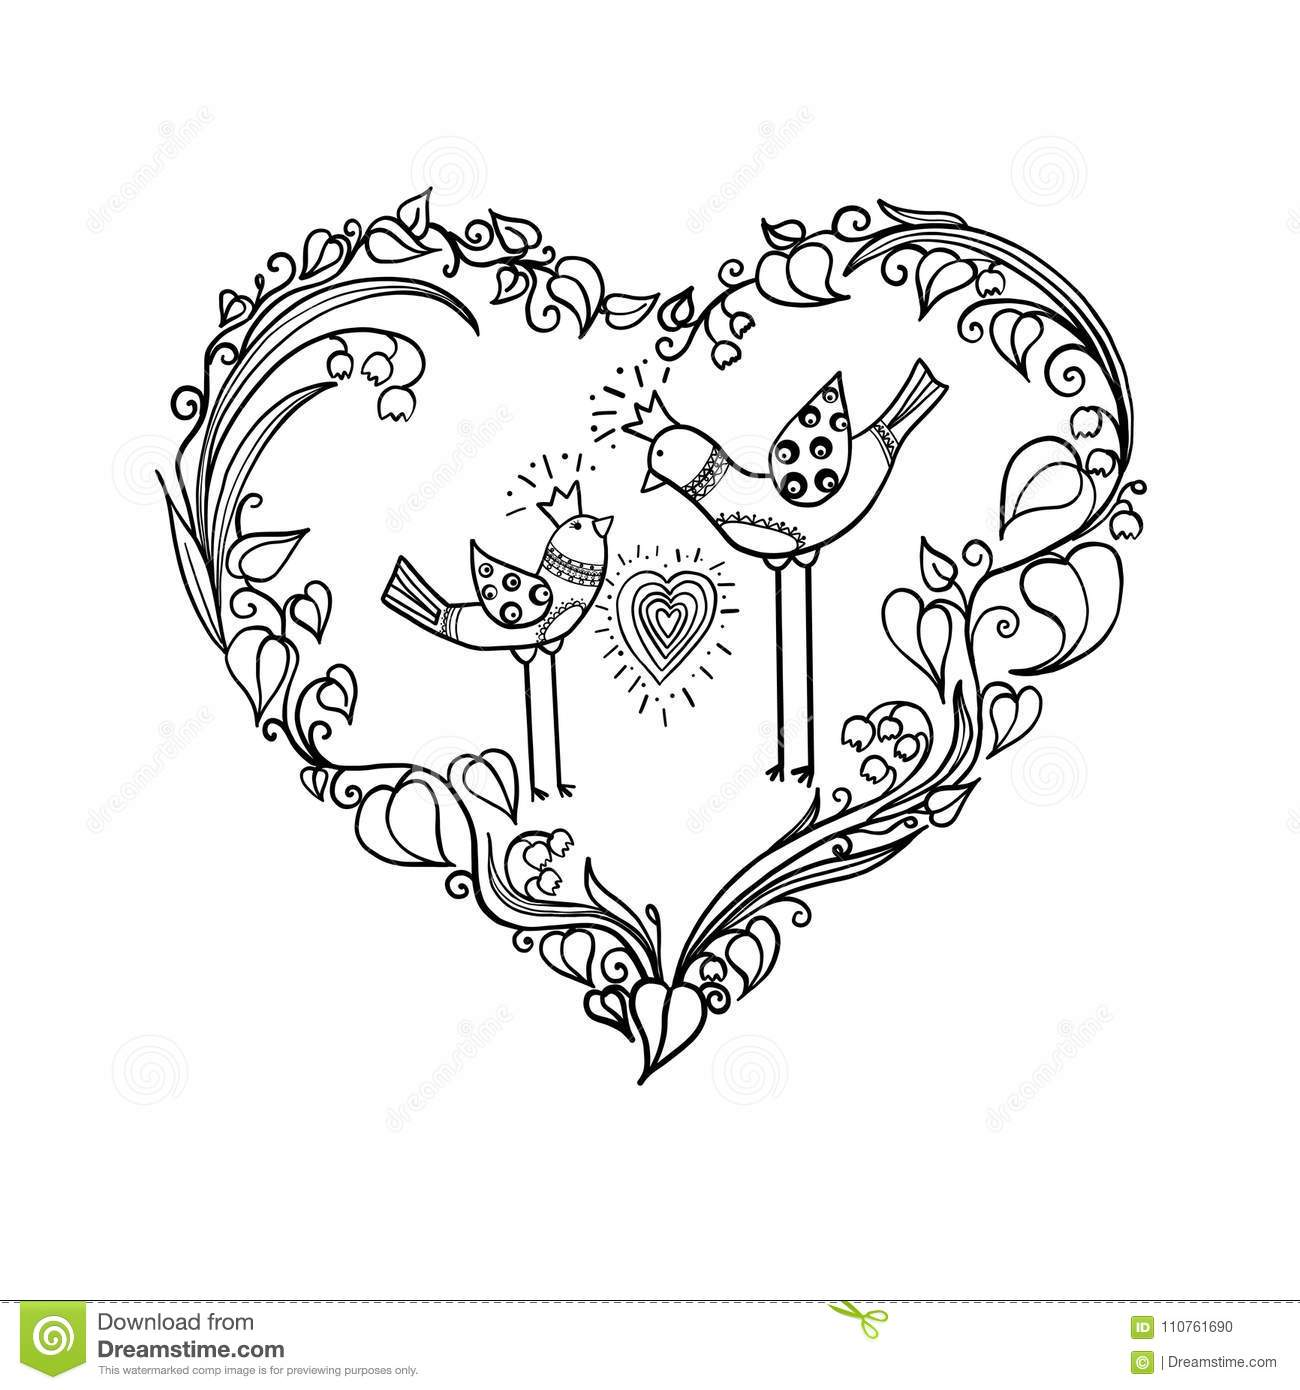 Two Love Birds With Heart Floral Ornament Love Print Concept Monochrome Vector Eps 10 Illustration Stock Vector Illustration Of Cute Anniversary 110761690